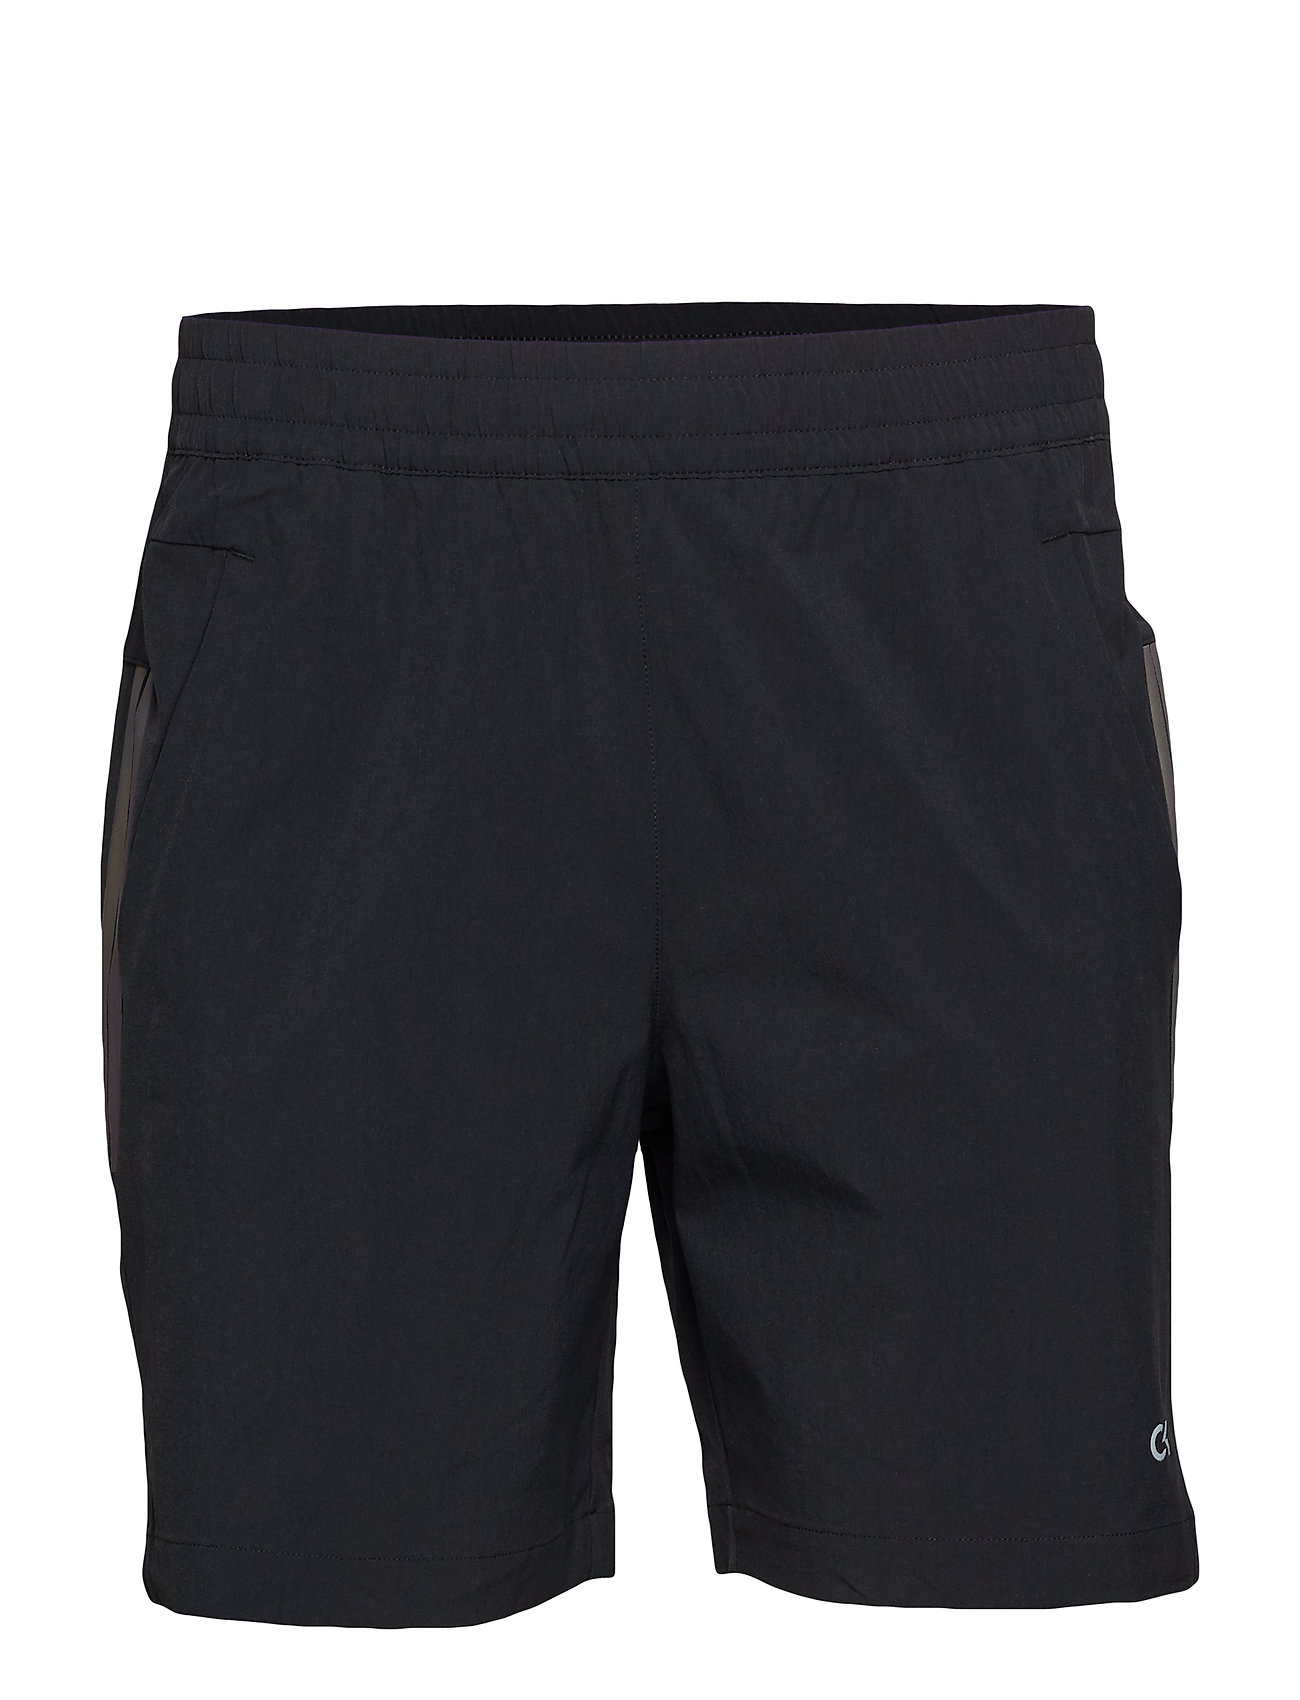 Shortck Klein BlackCalvin Performance Shortck Woven Woven Klein BlackCalvin Shortck Performance Woven rCQdths